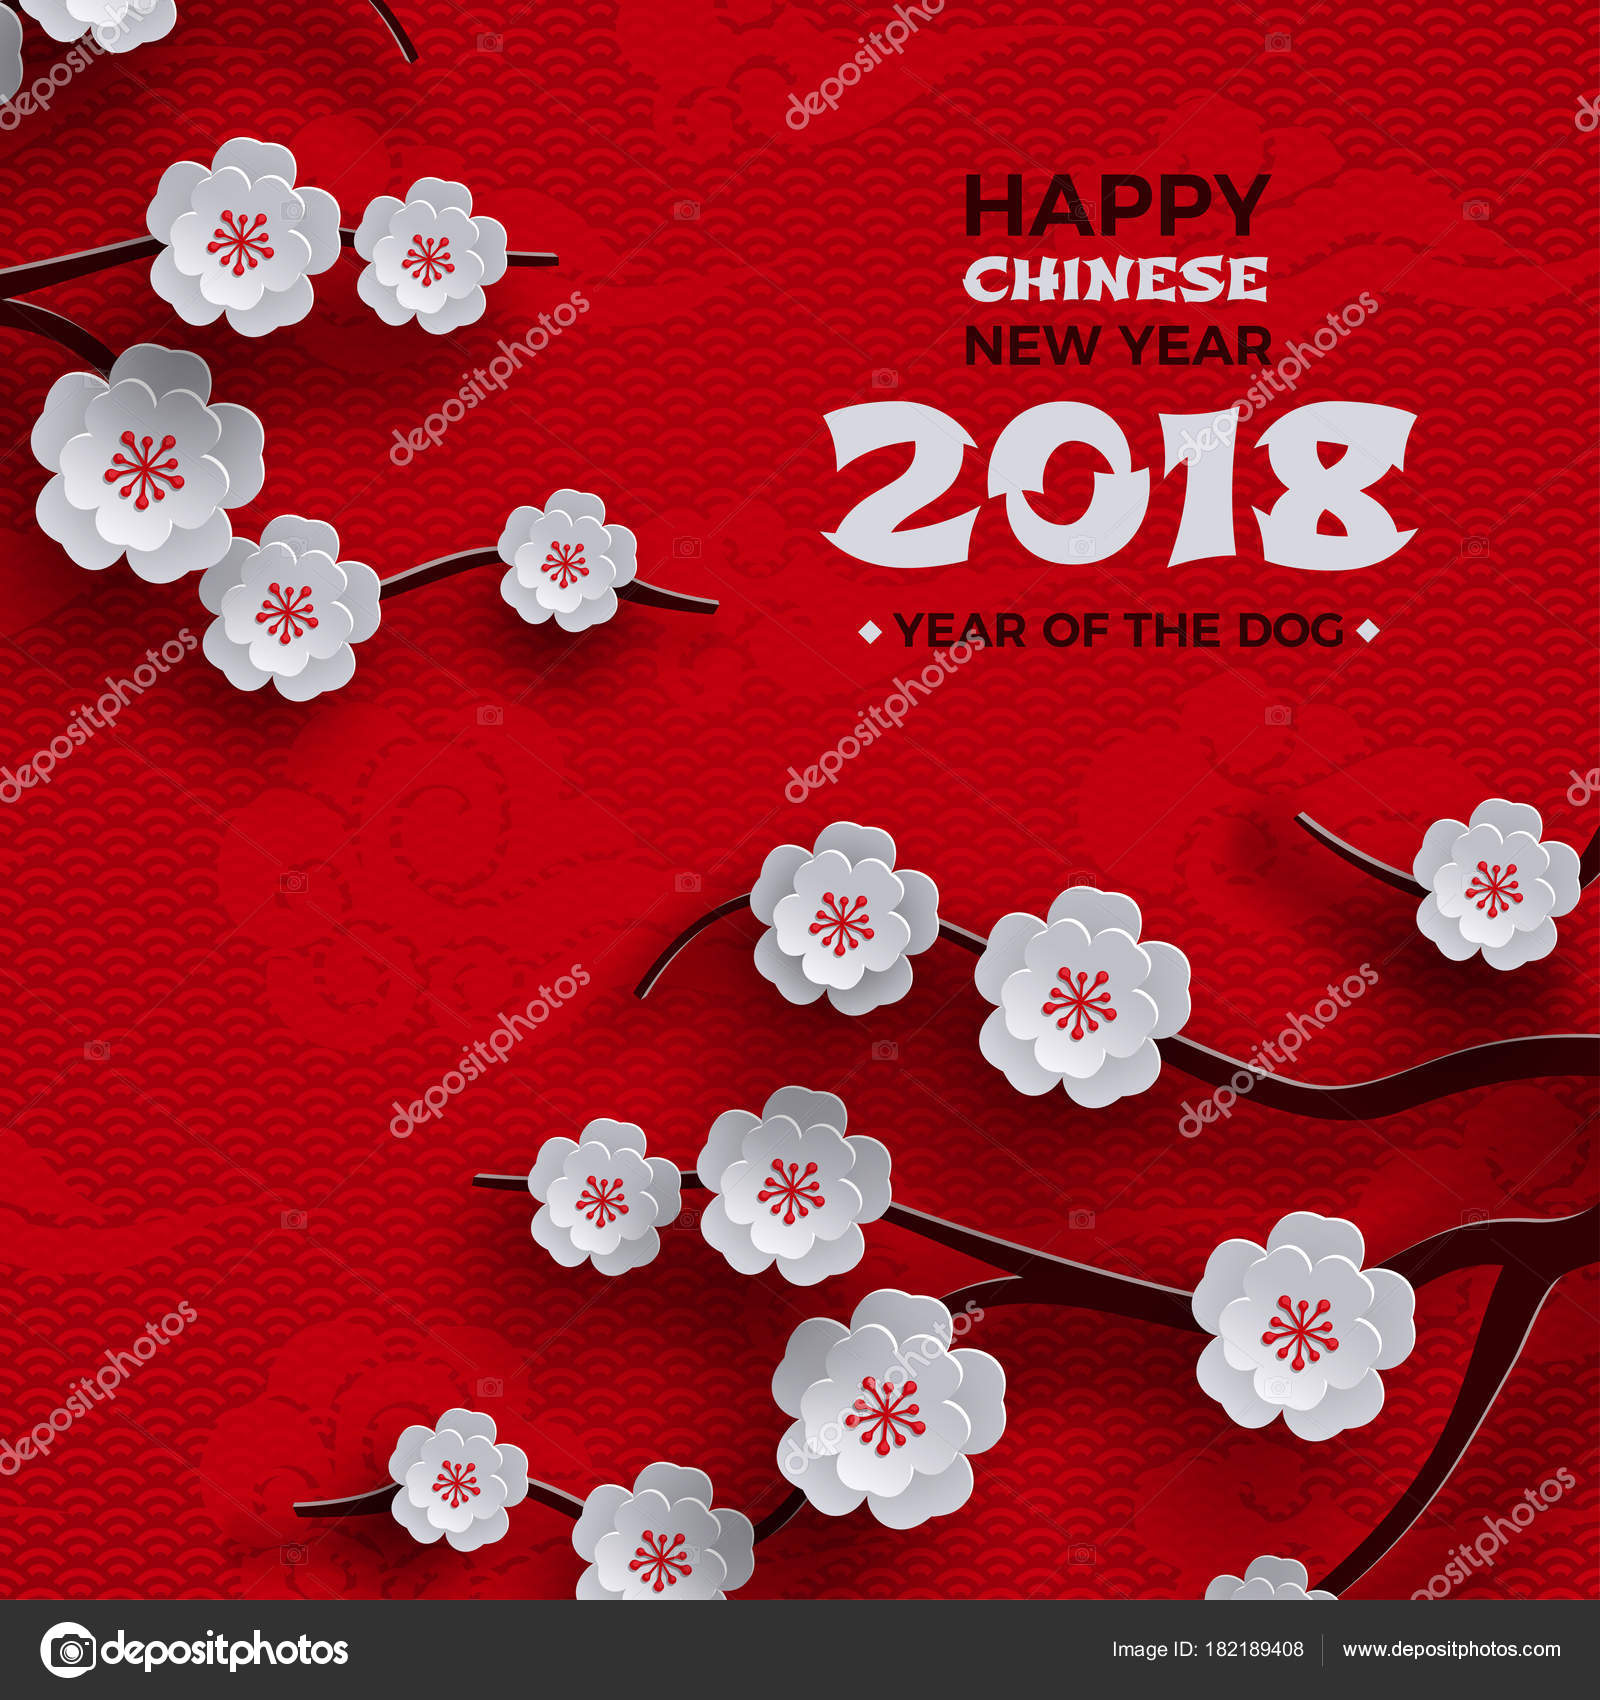 2018 chinese new year poster red background with traditional sakura cherry flowers on tree branches clouds pattern oriental backdrop